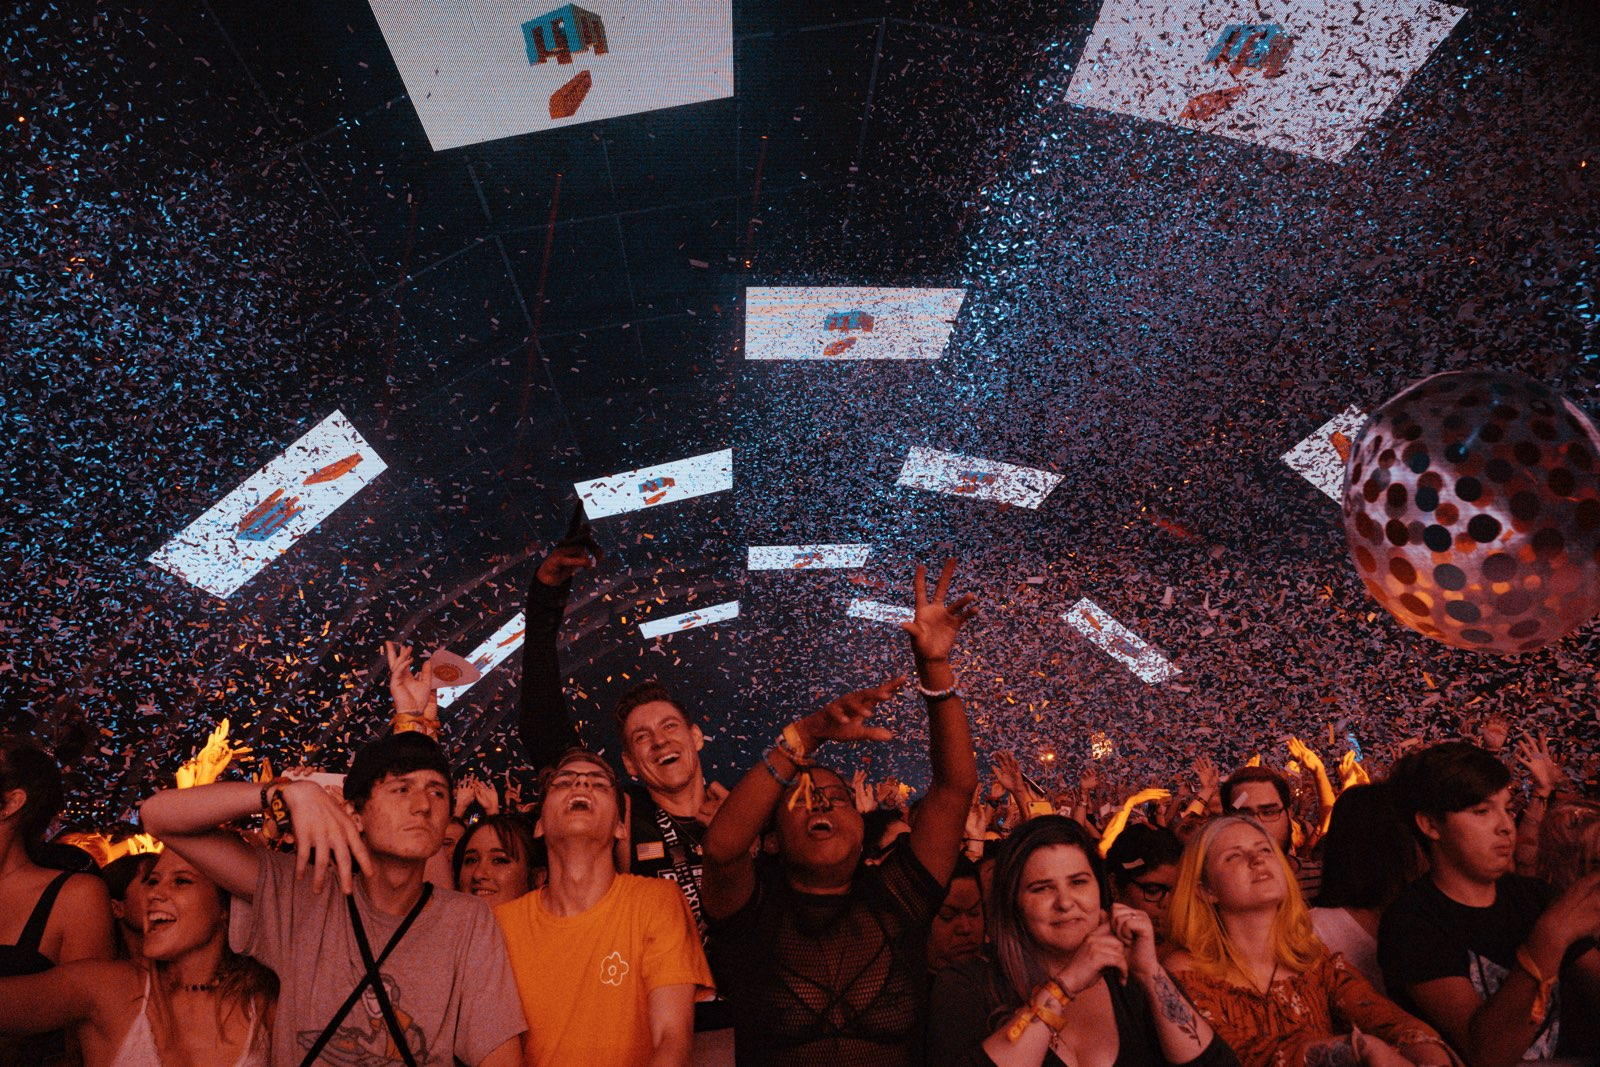 pure euphoria with a splash of confetti   Photo by Carter Howe